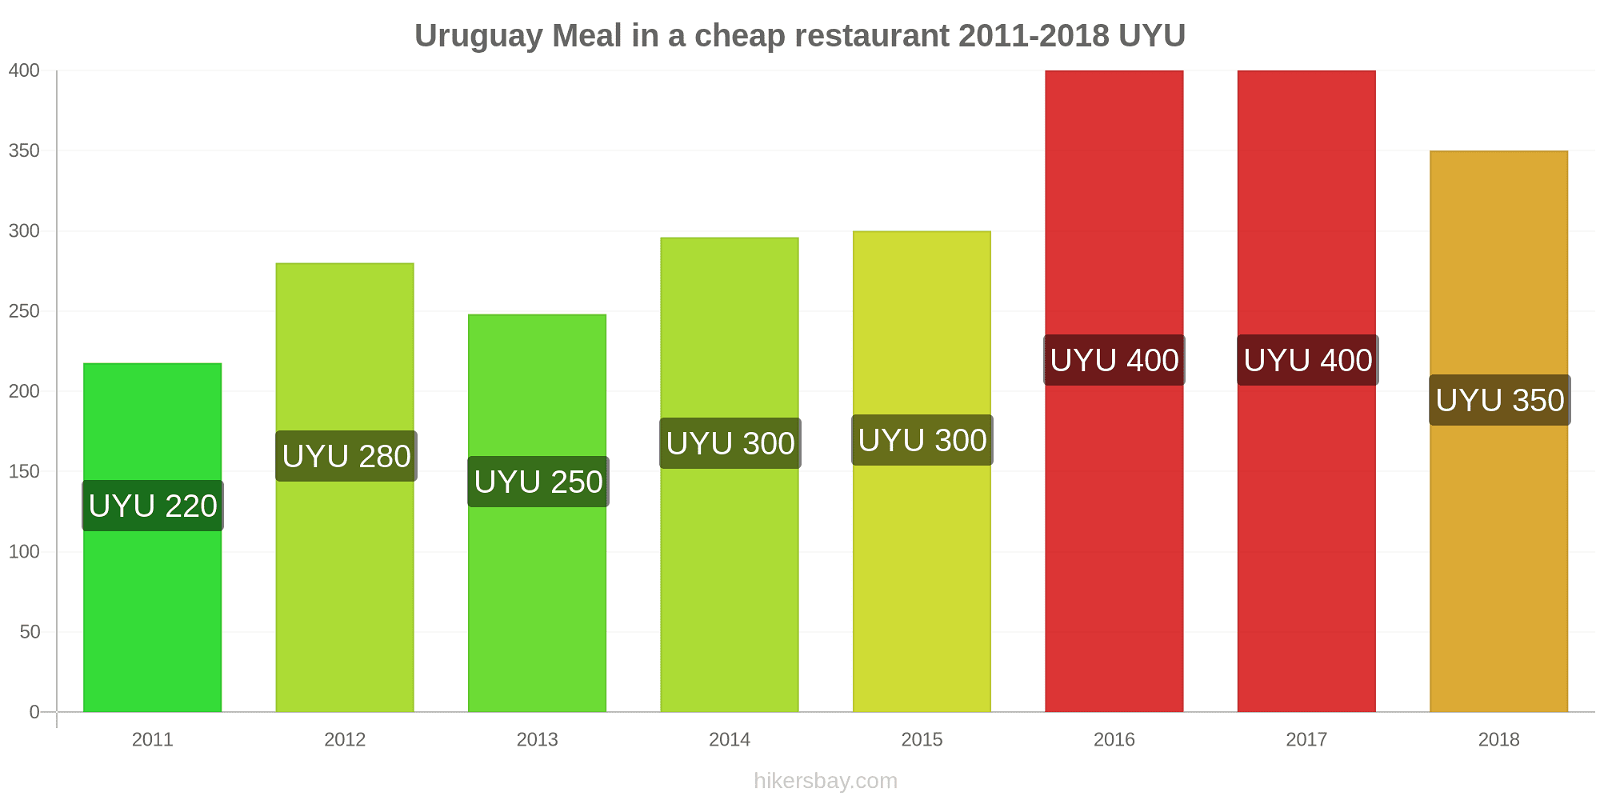 Uruguay price changes Meal in a cheap restaurant hikersbay.com